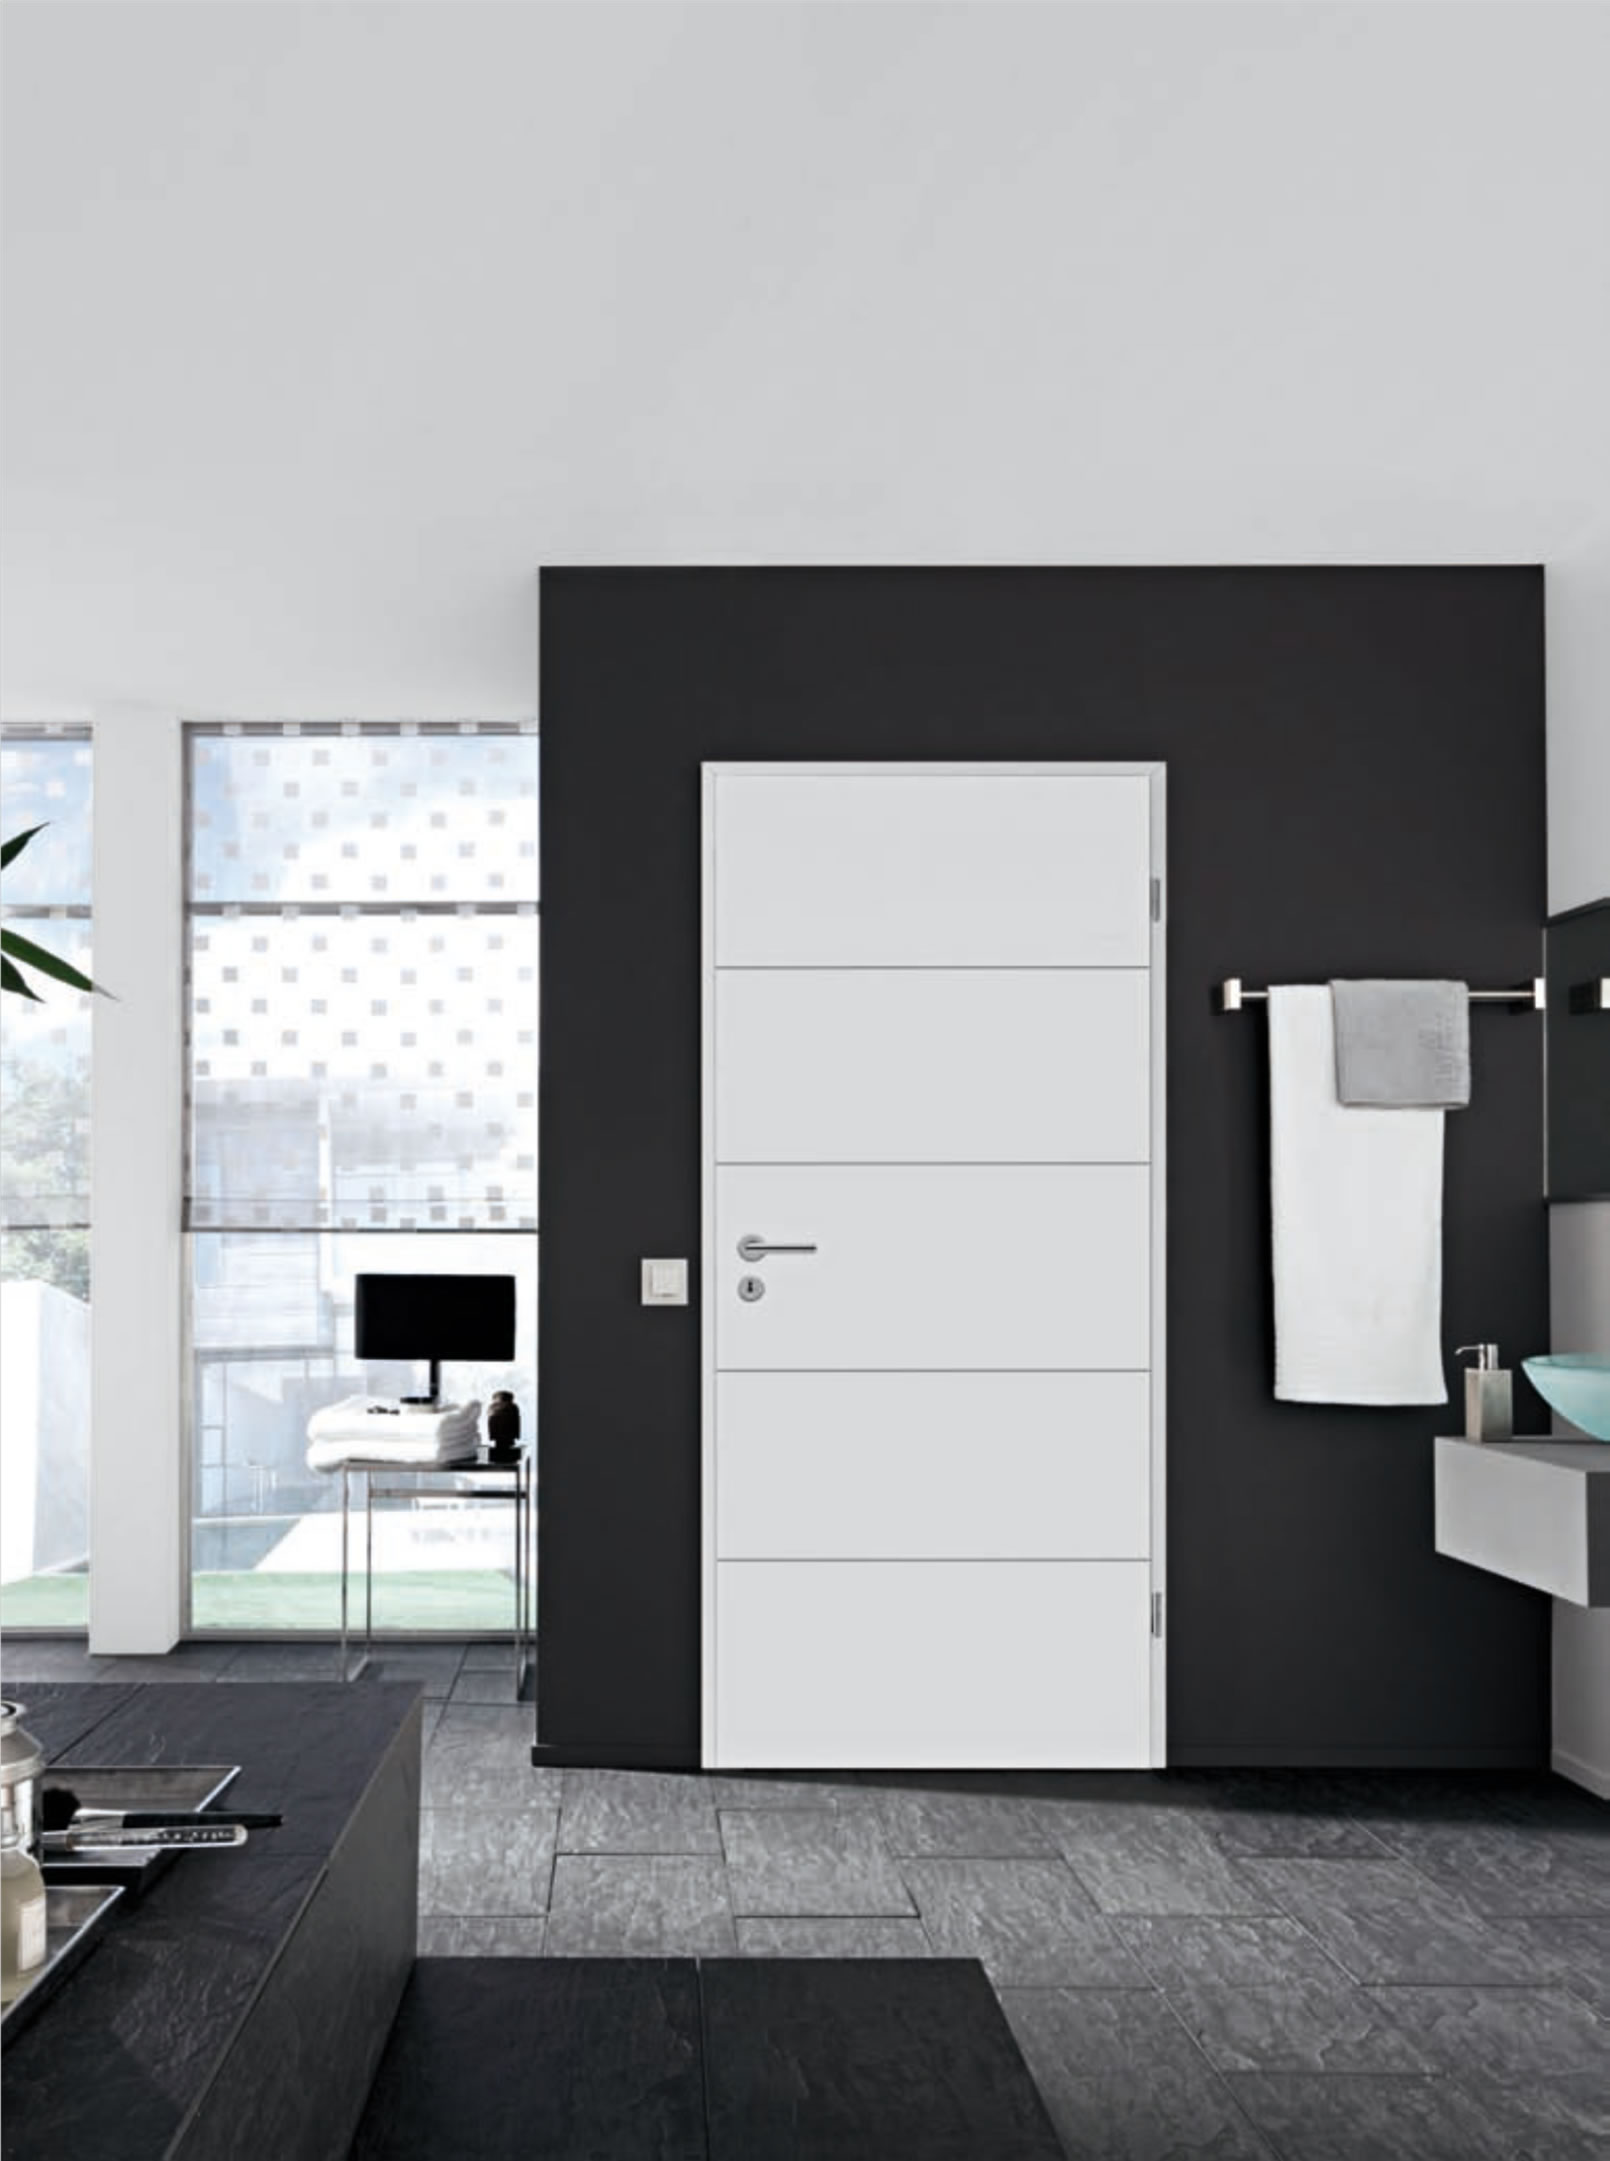 gedibois portes d int rieur. Black Bedroom Furniture Sets. Home Design Ideas